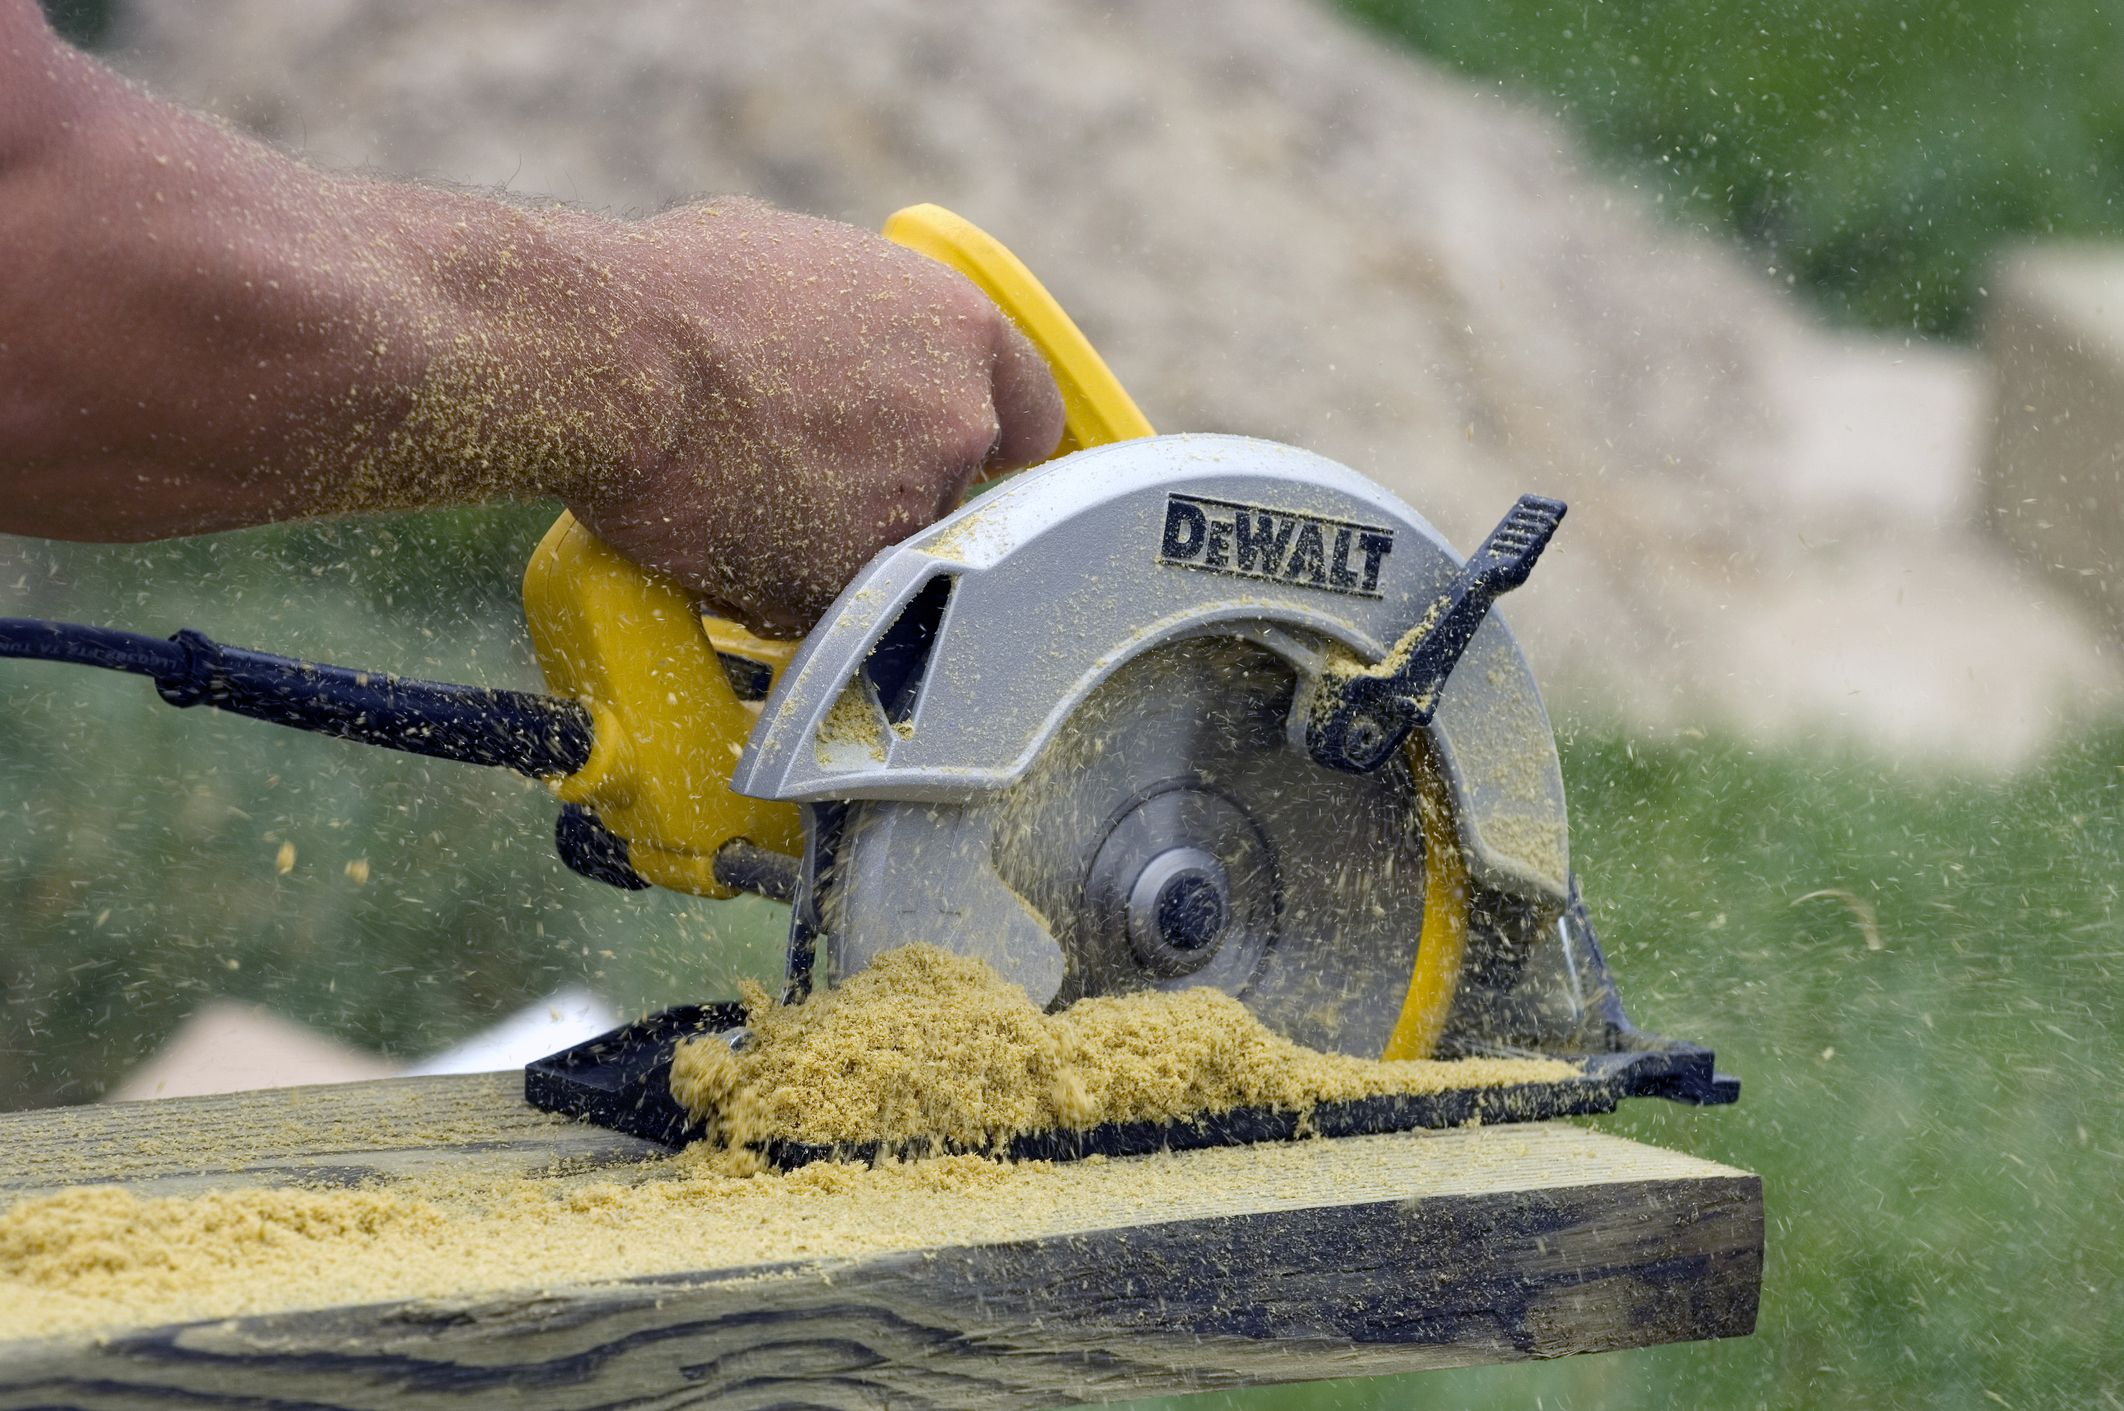 Best Circular Saws of 2020 – Complete Round-up 10